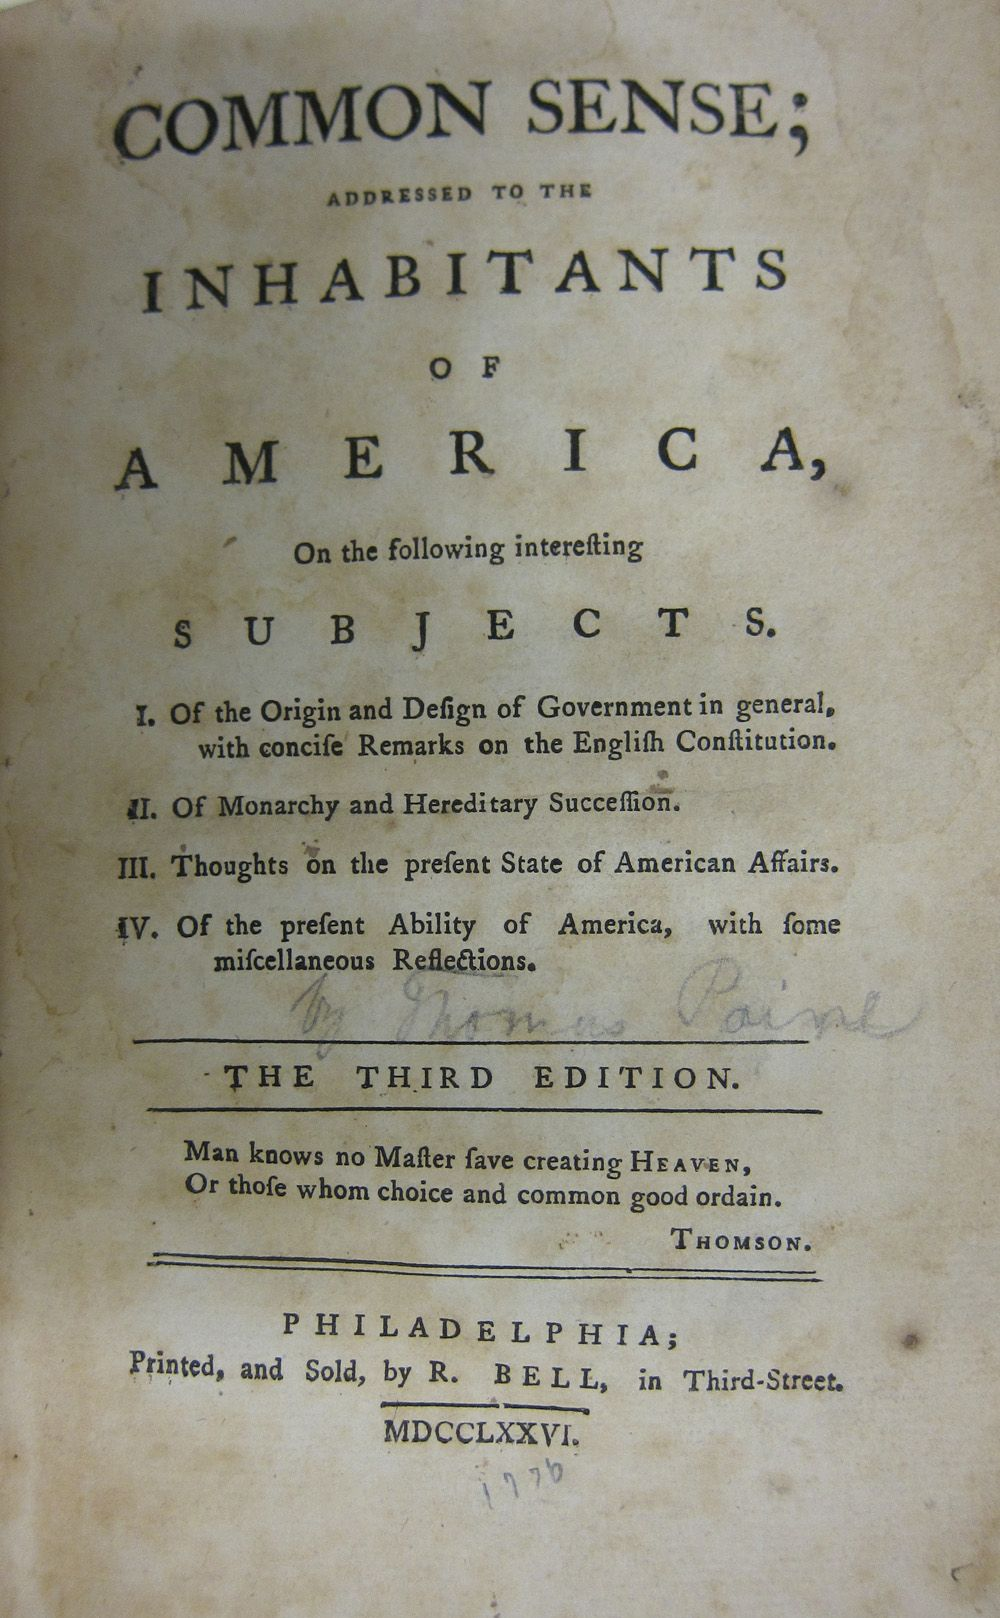 An analysis of the influences of american independence in common sense by thomas paine